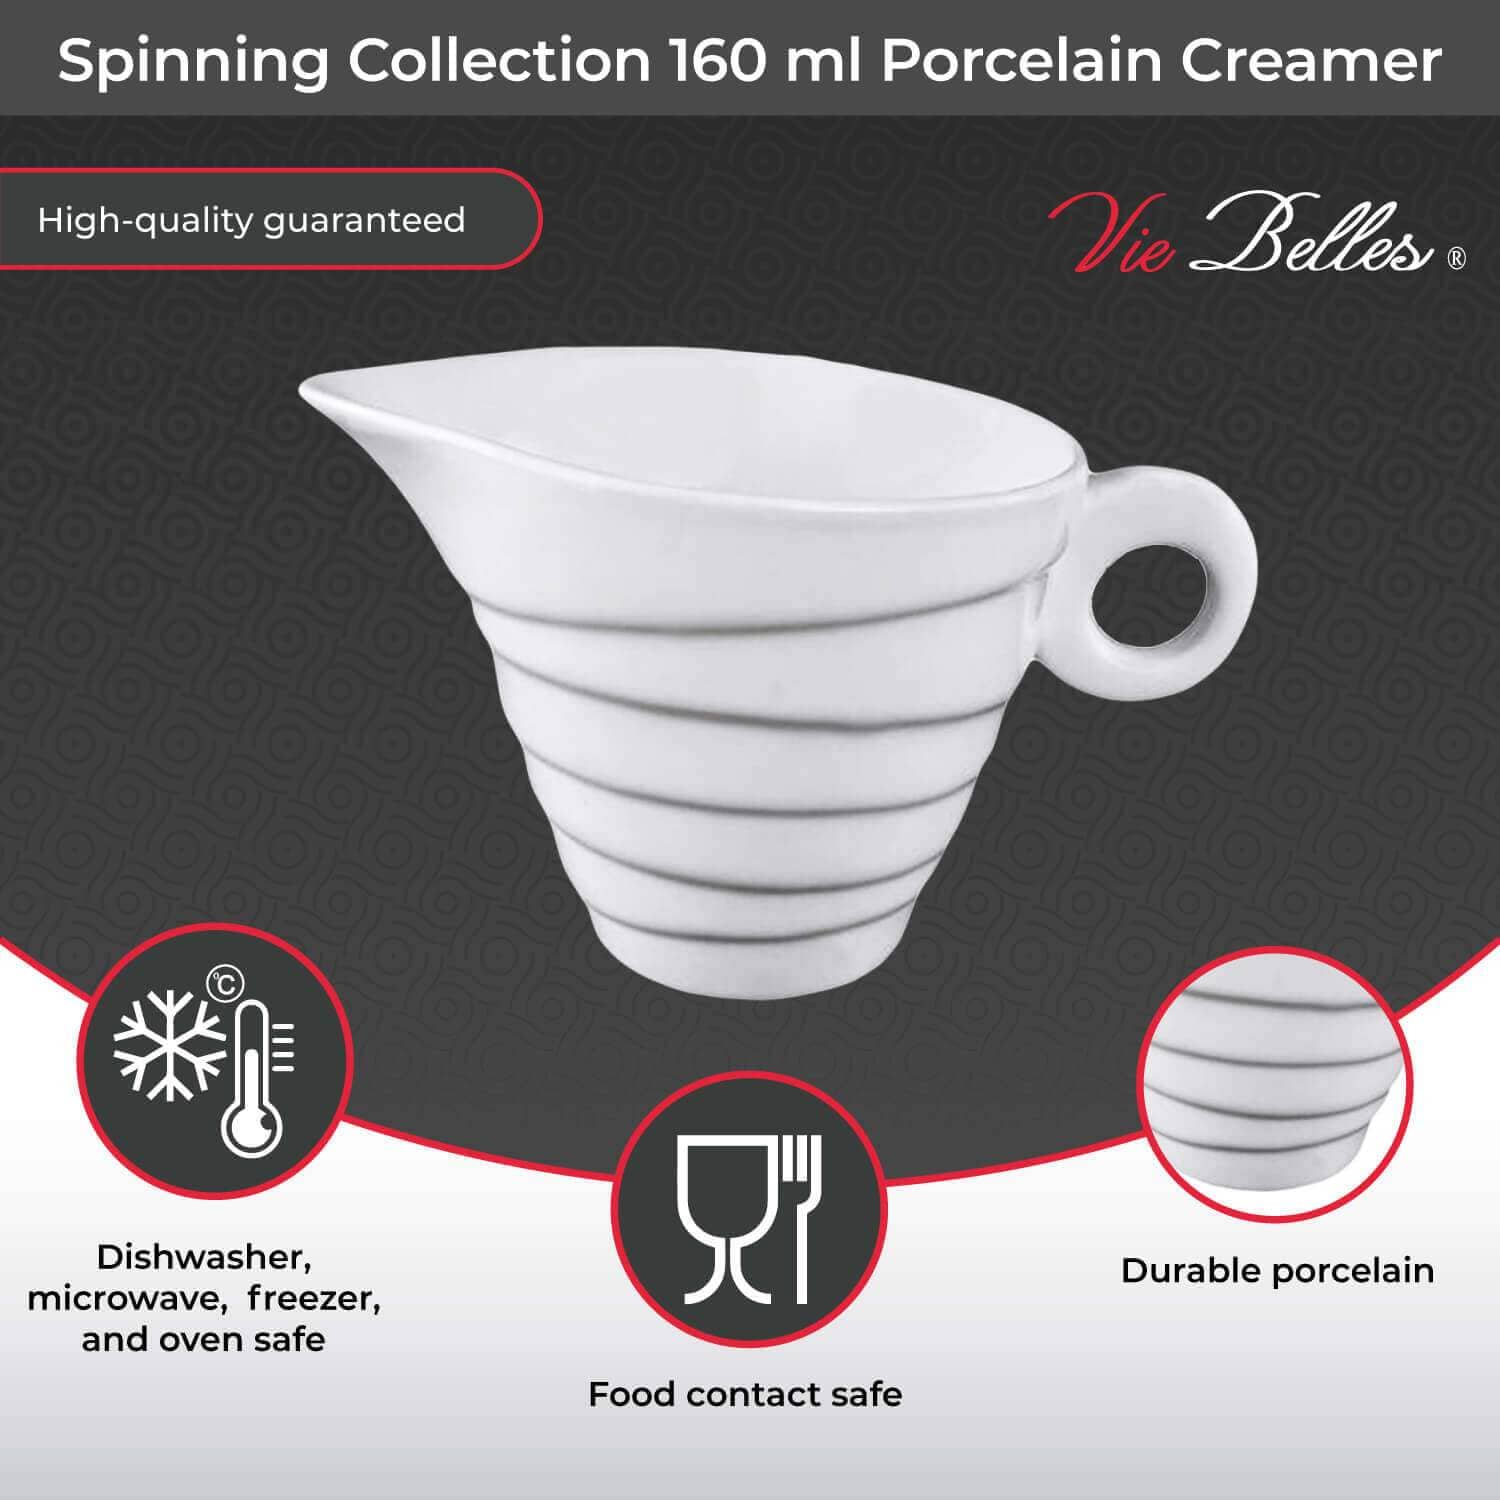 Vie Belles Tabletop Spinning Collection 160 ml Porcelain Creamer